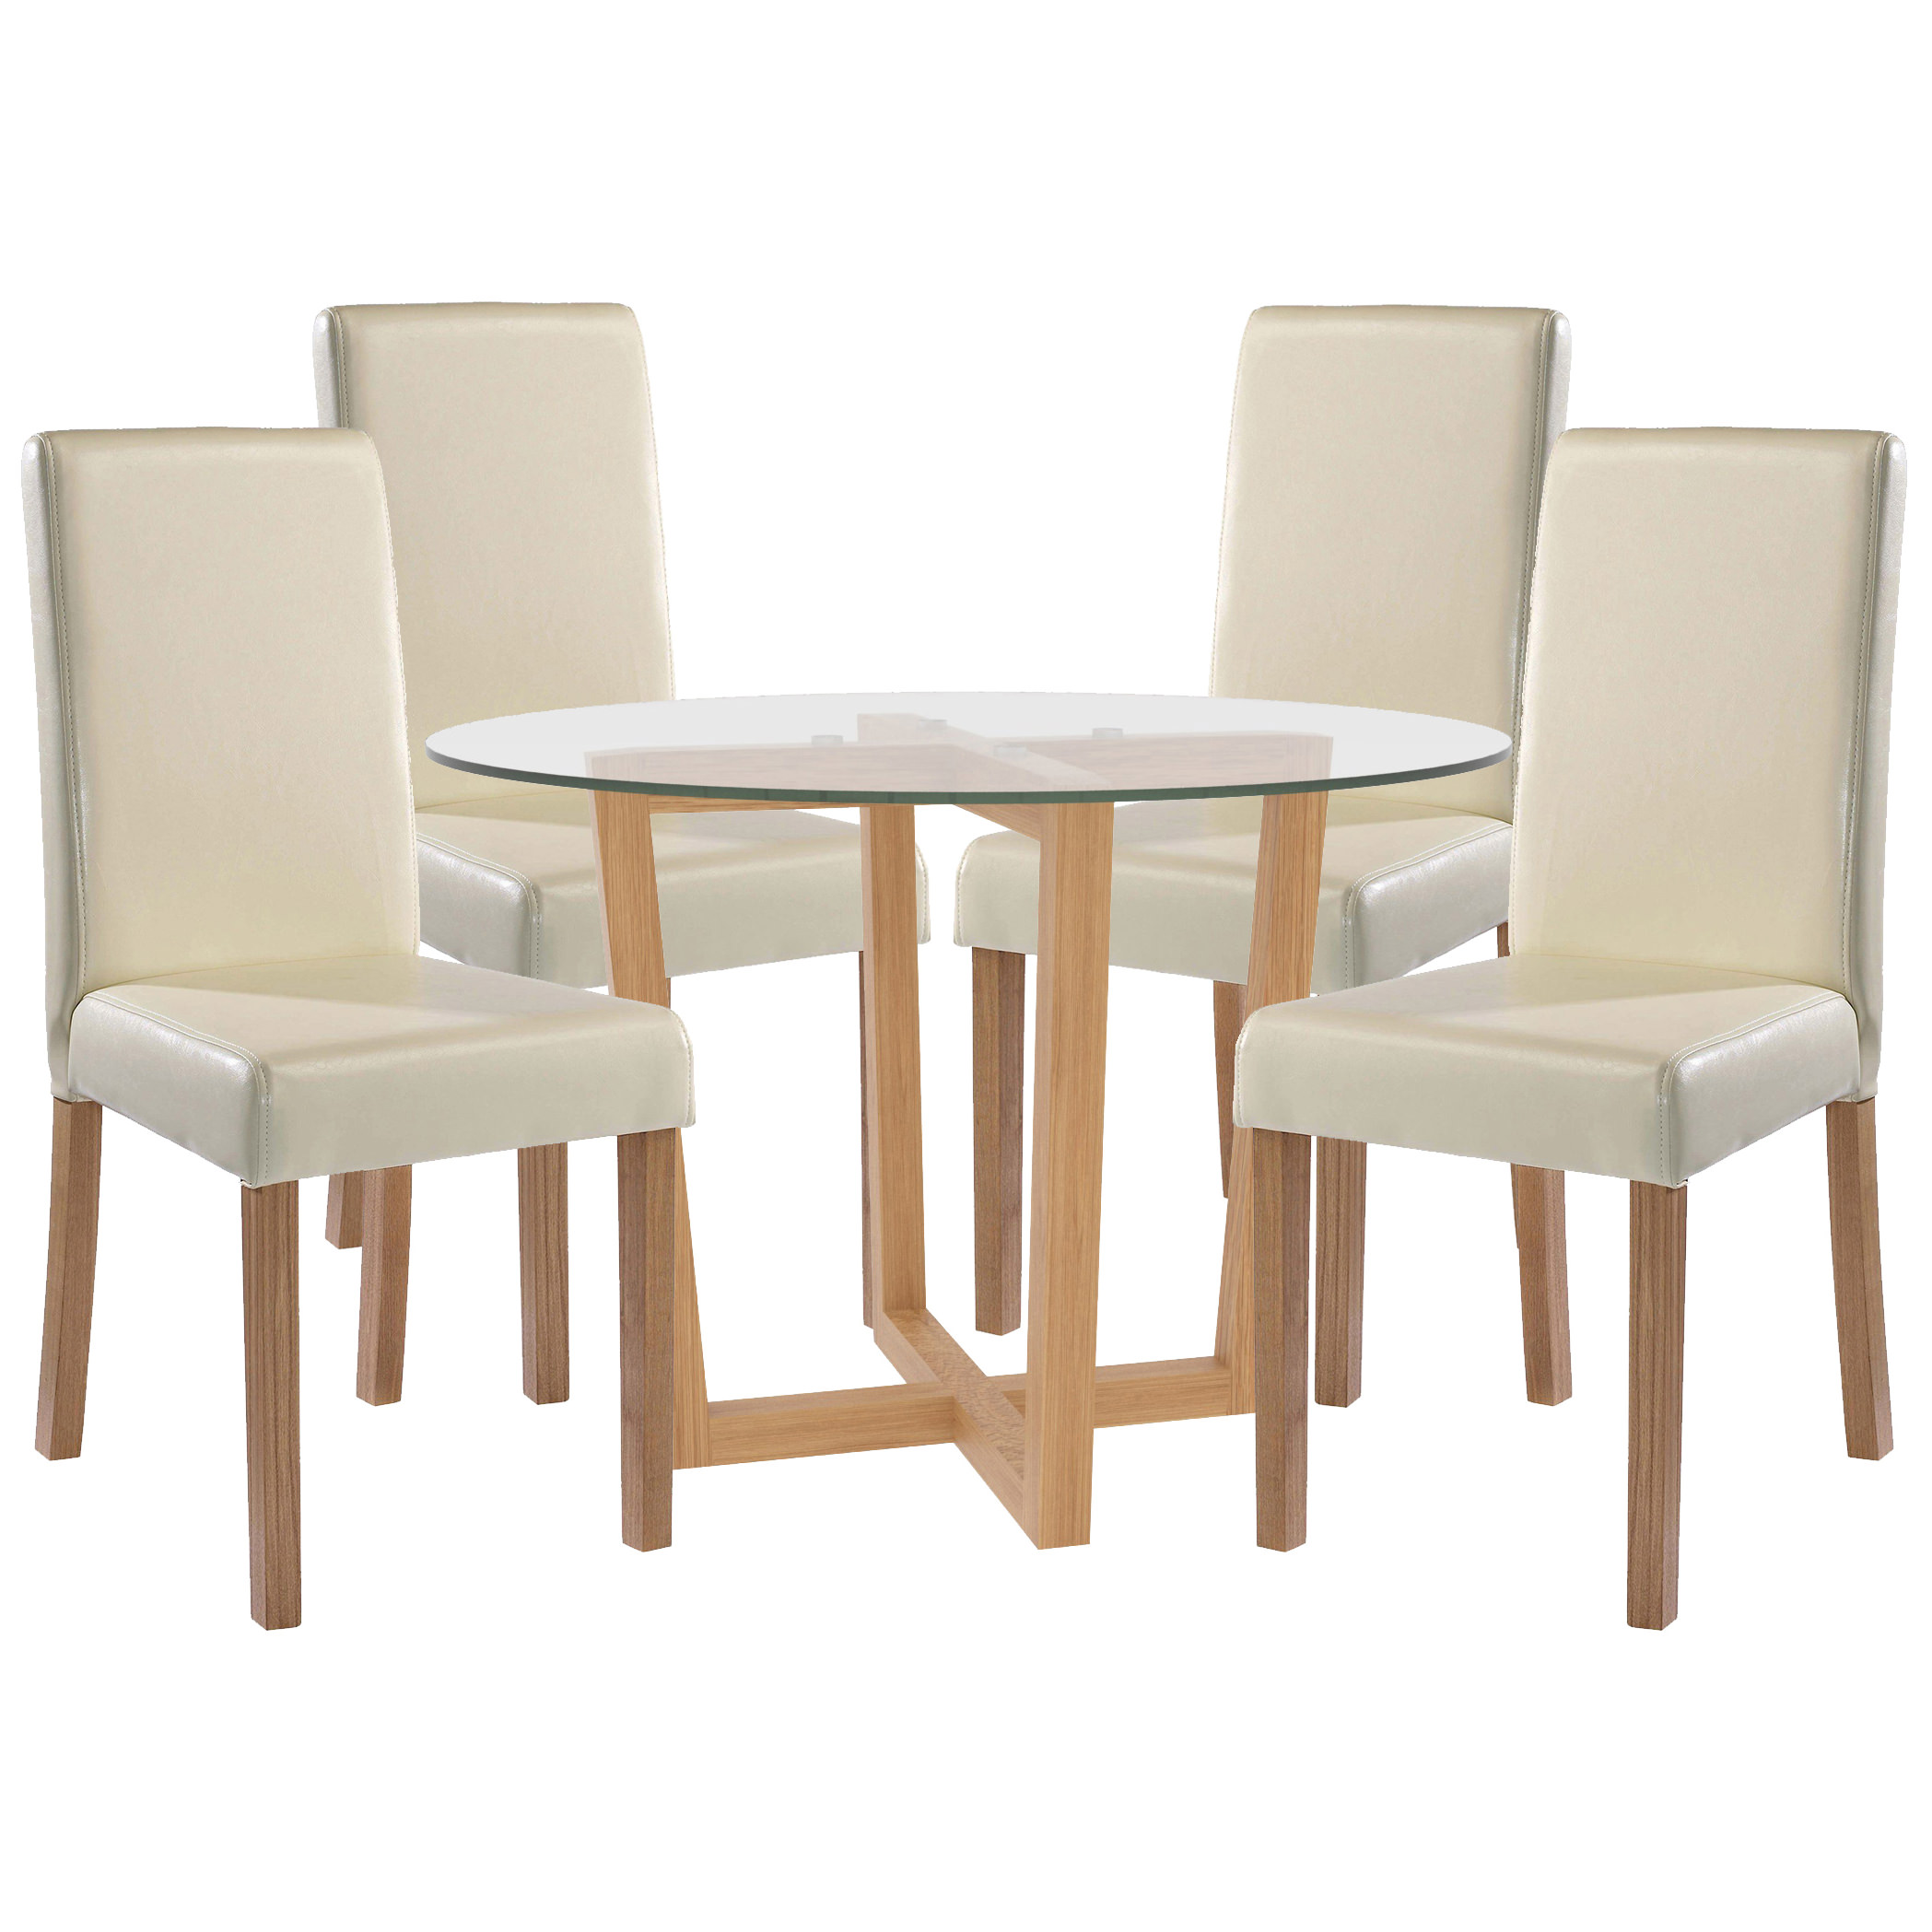 Oak Glass Dining Table And Chair Set With 4 Seats Black Brown